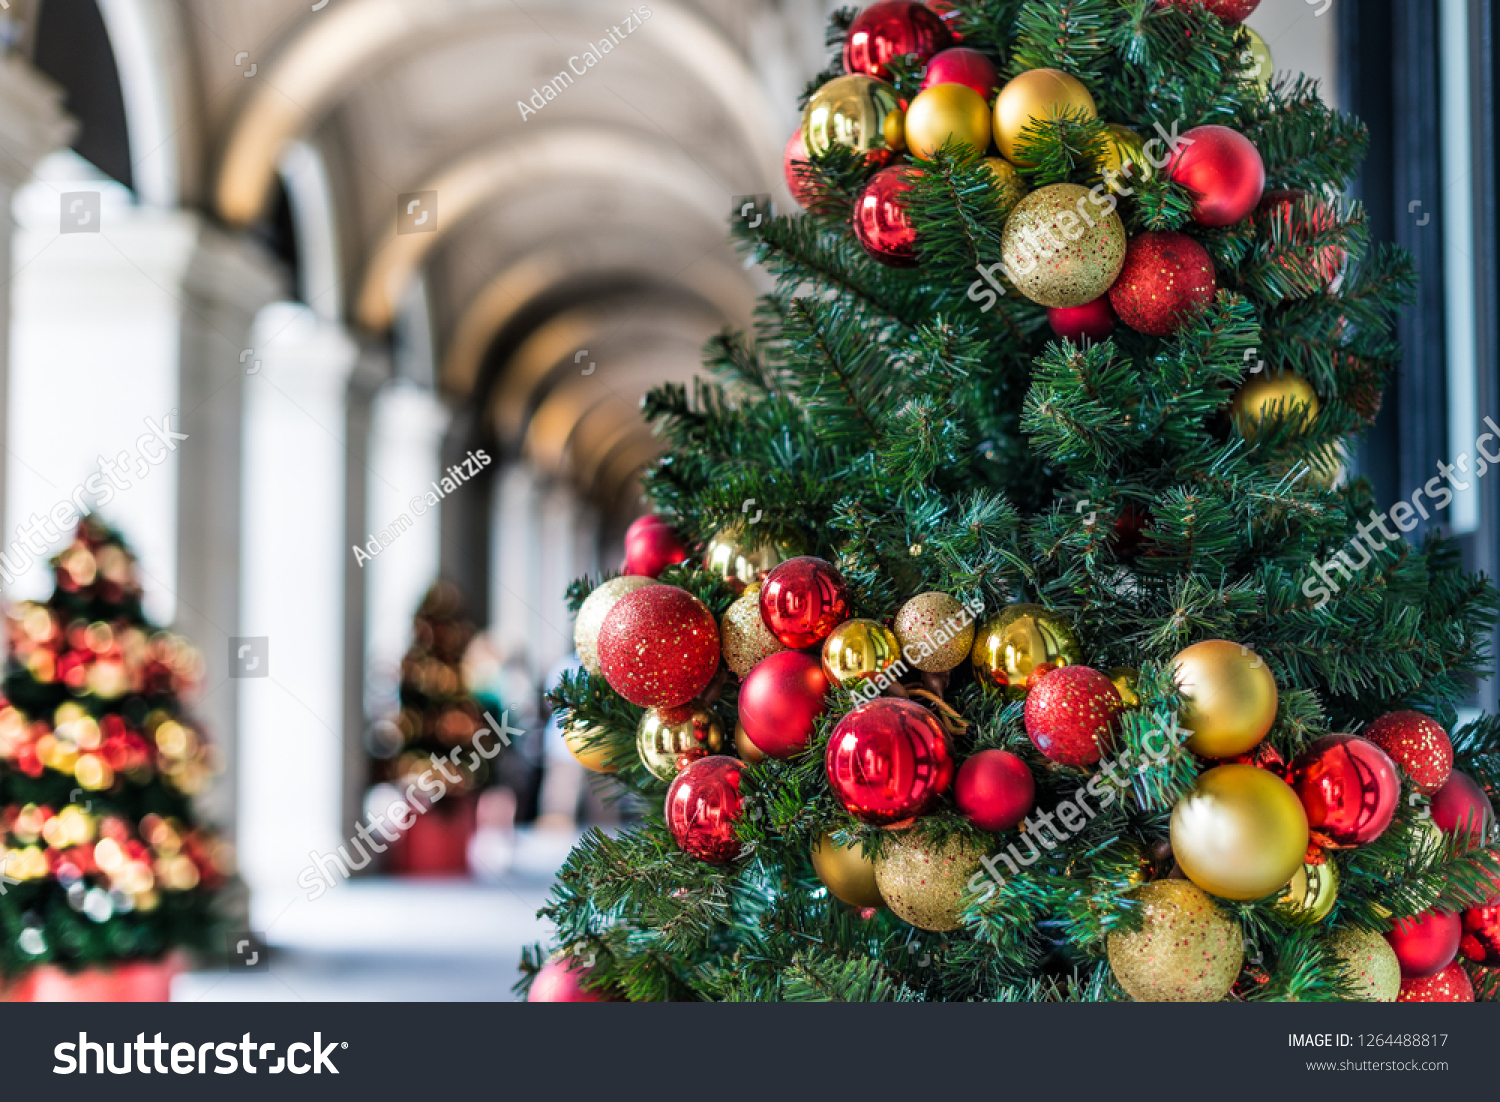 Christmas Tree Decorations Under Arched Hallway Backgrounds Textures Stock Image 1264488817